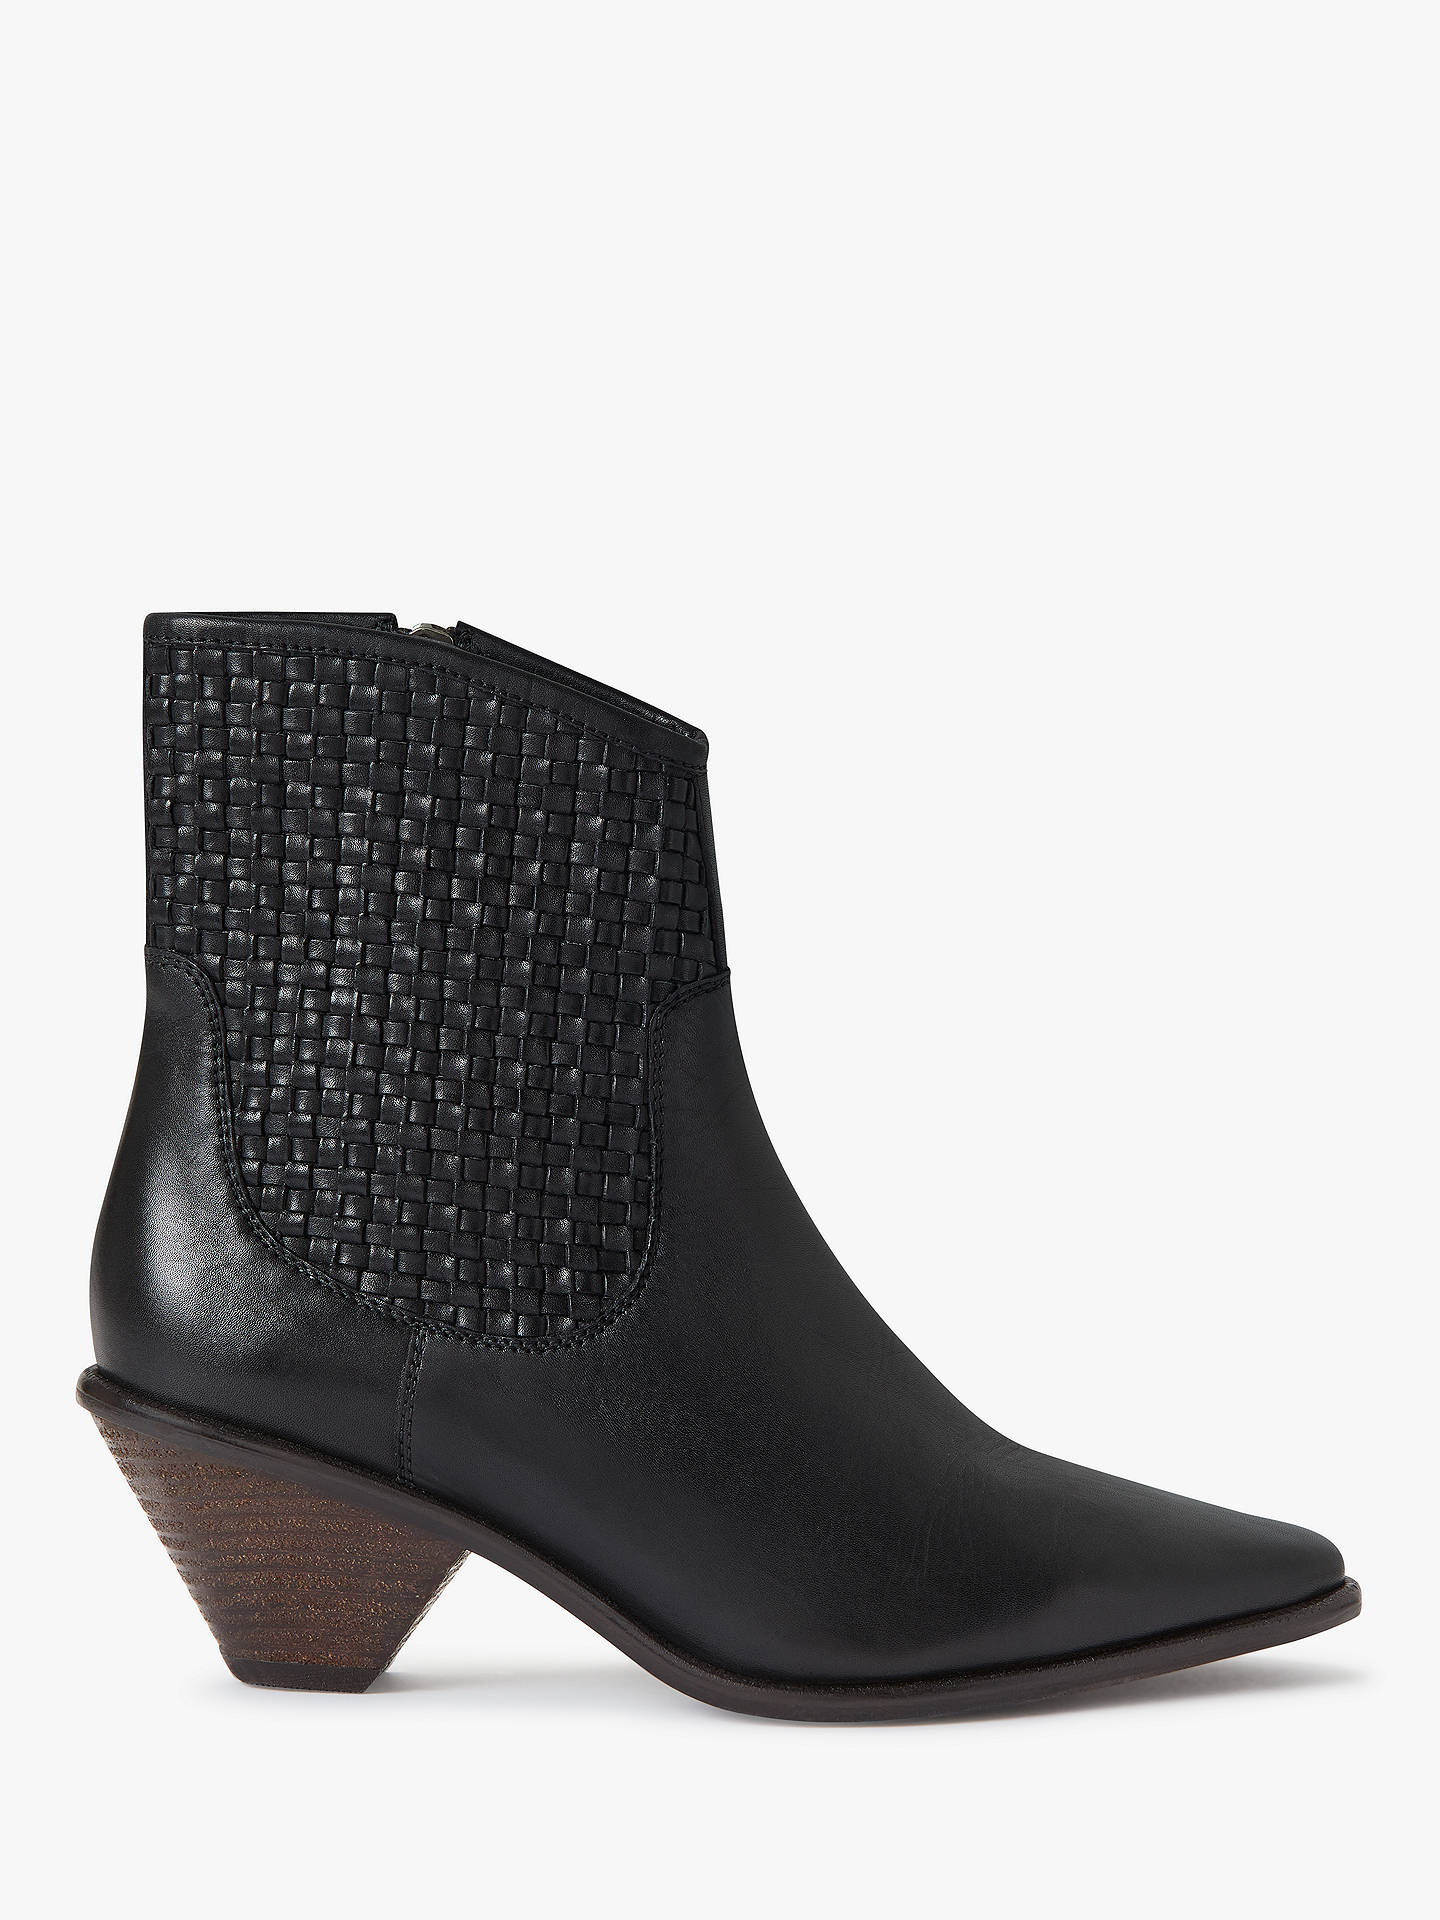 AndOr Priya Ankle Boots Black Leather £109